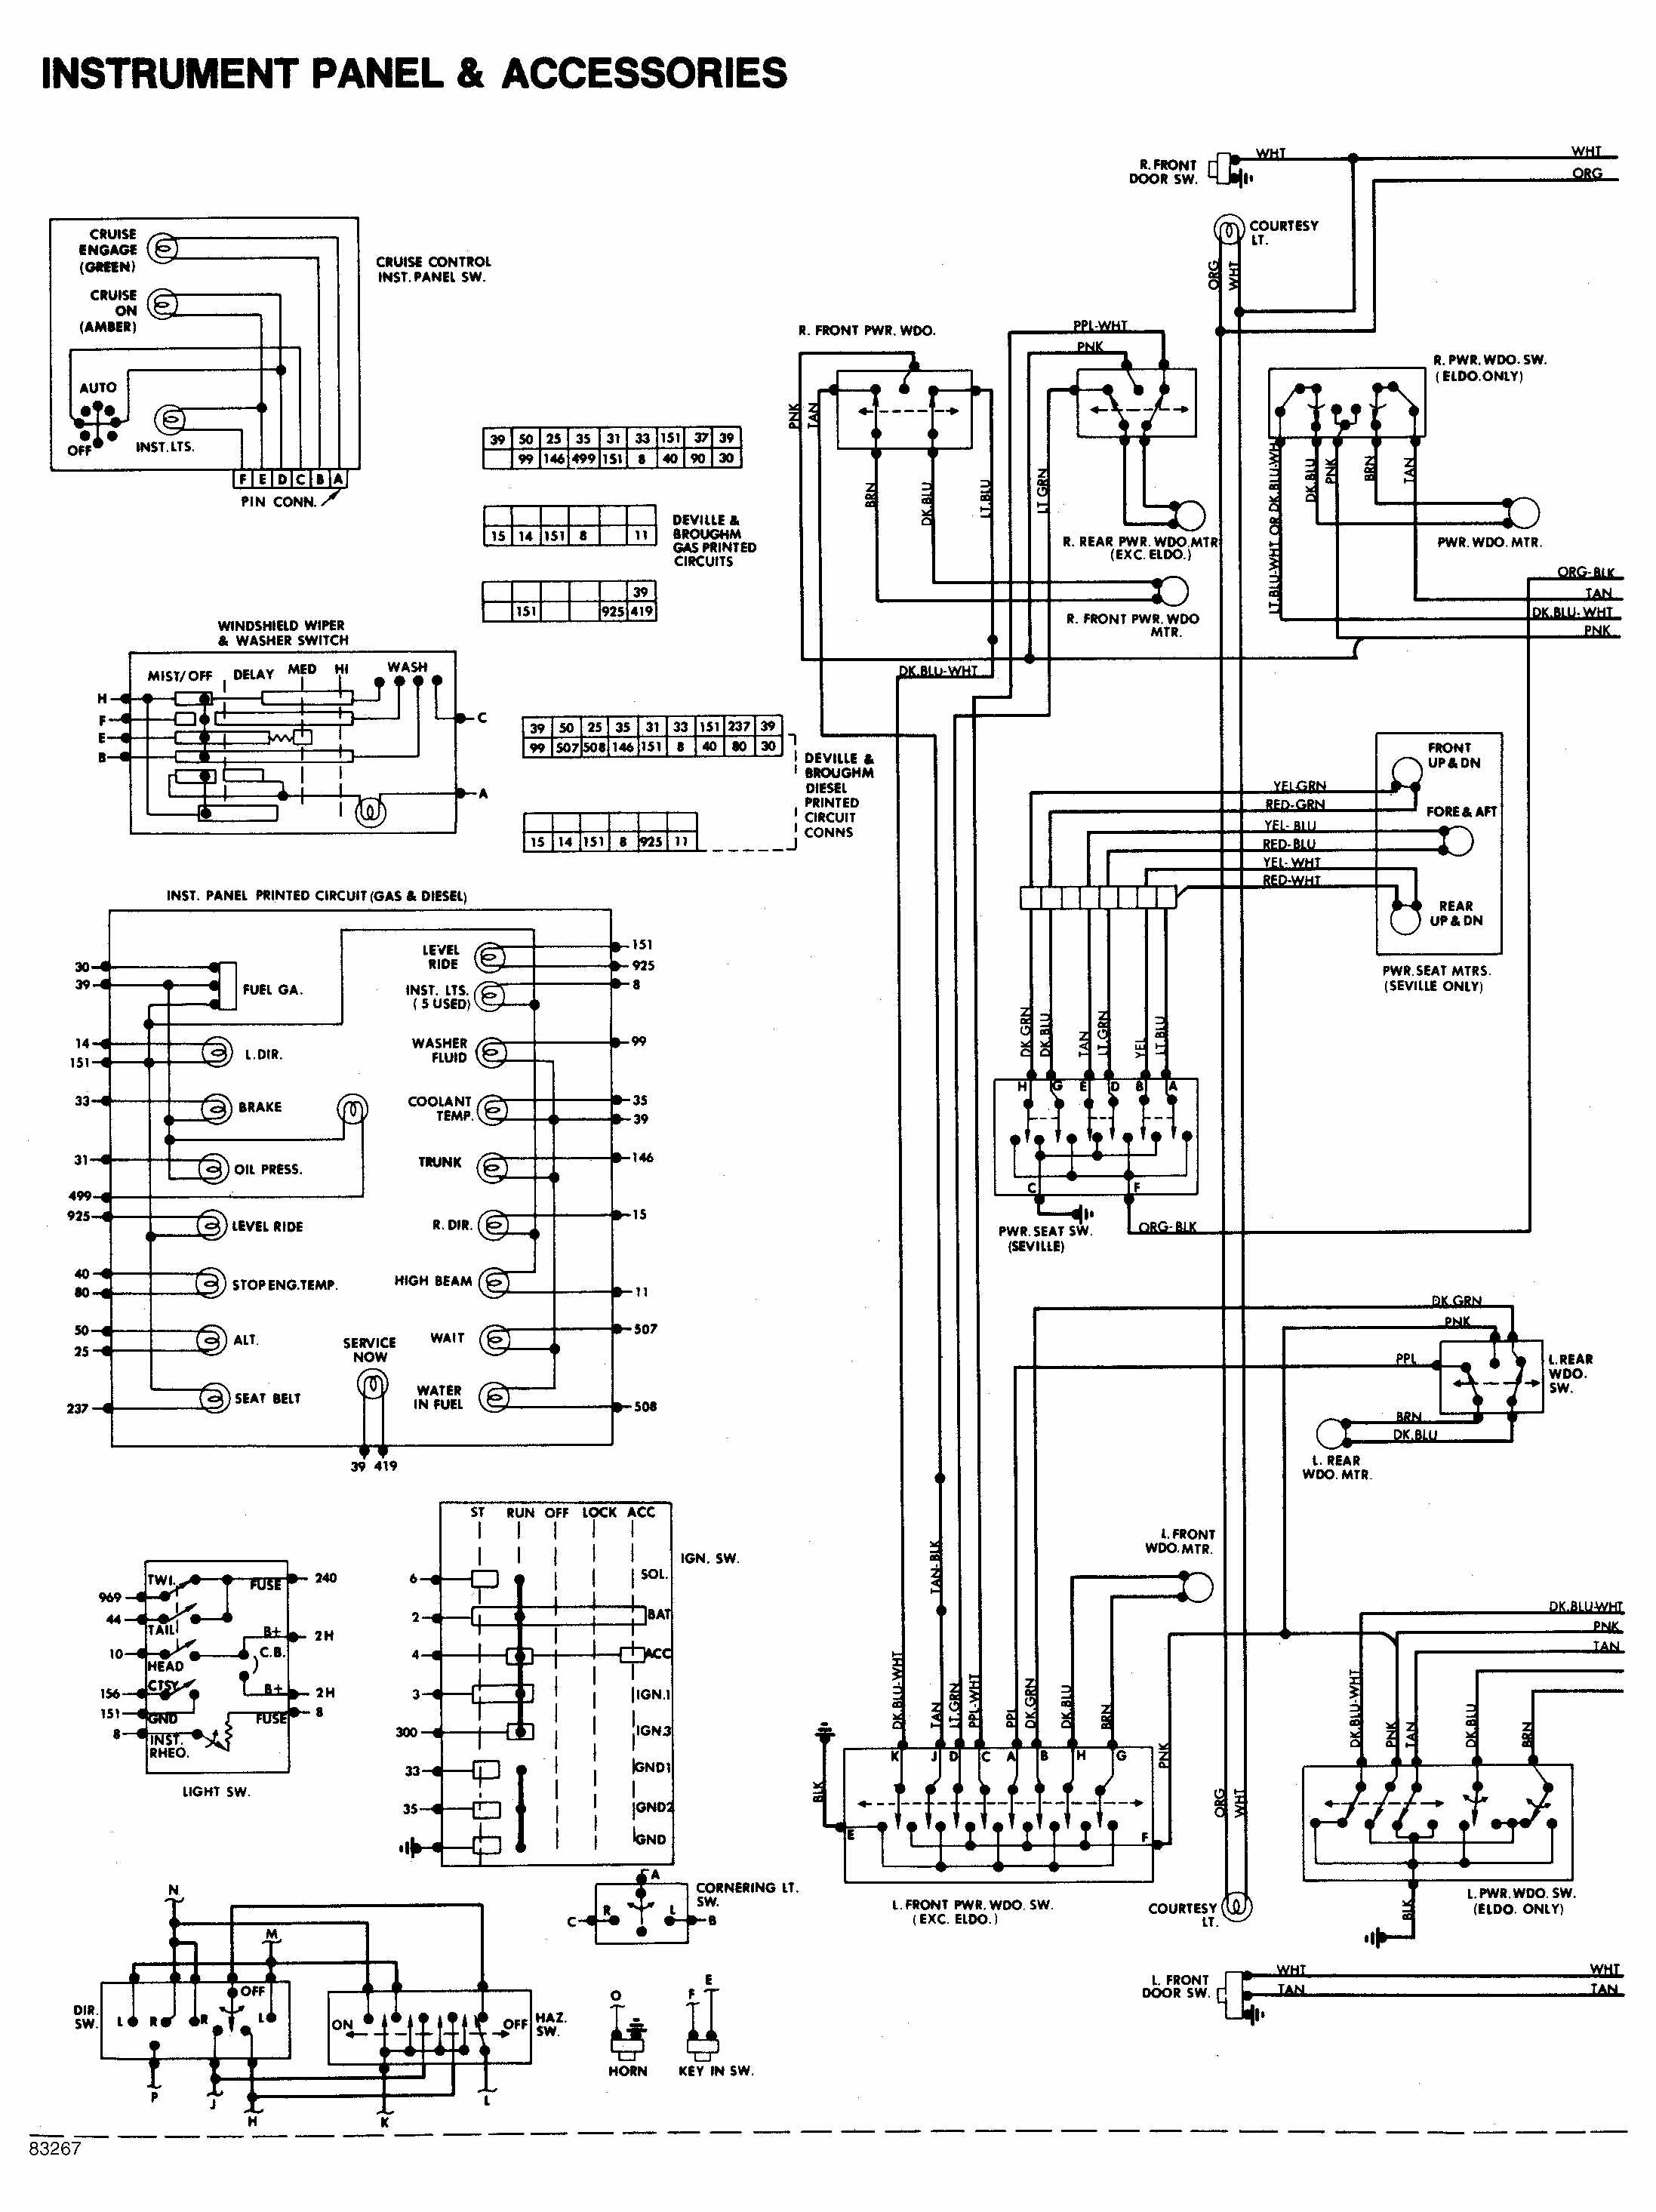 instrument panel and accessories wiring diagram of 1984 cadillac deville 1969 mustang radio wiring wiring diagram